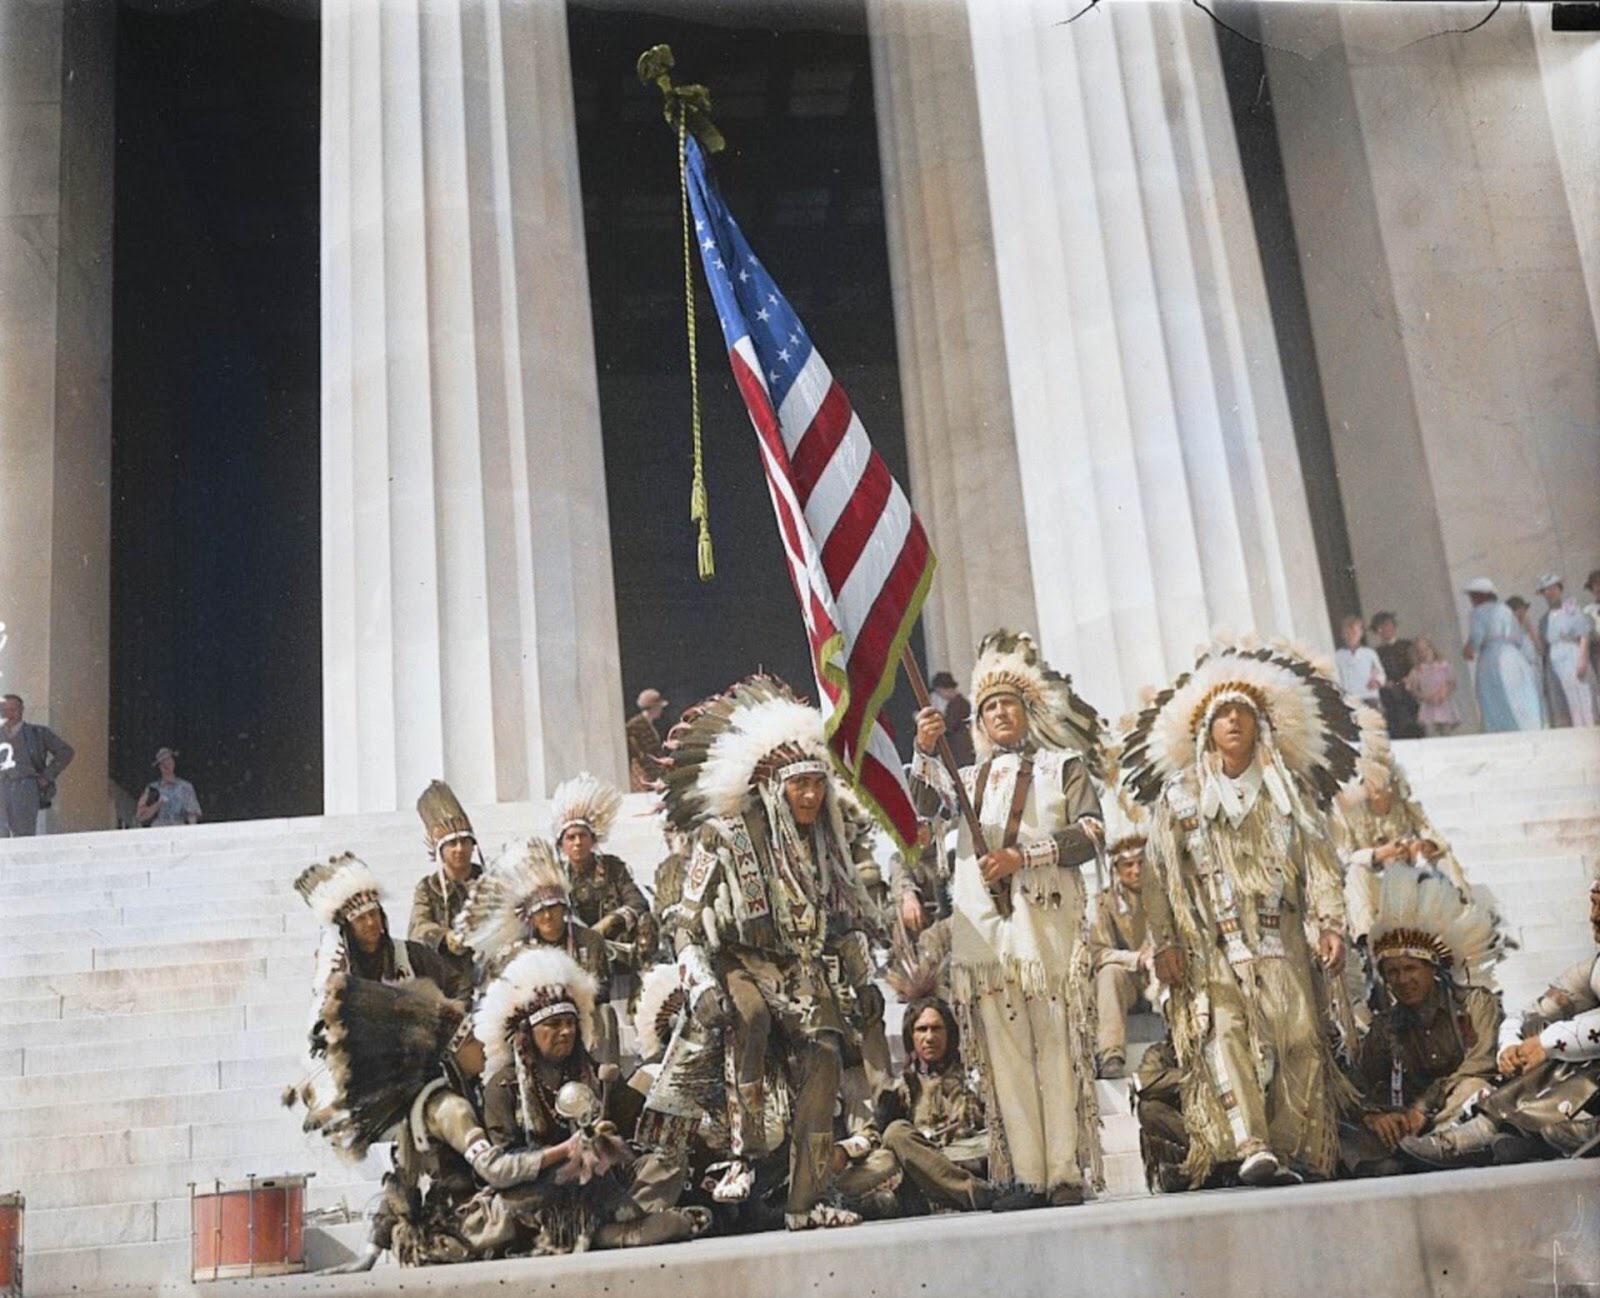 1936. Native American men wearing their traditional attire while raising the Stars and Stripes at the Lincoln Memorial. 12 years after President Calvin Coolidge granted them US citizenship.jpg